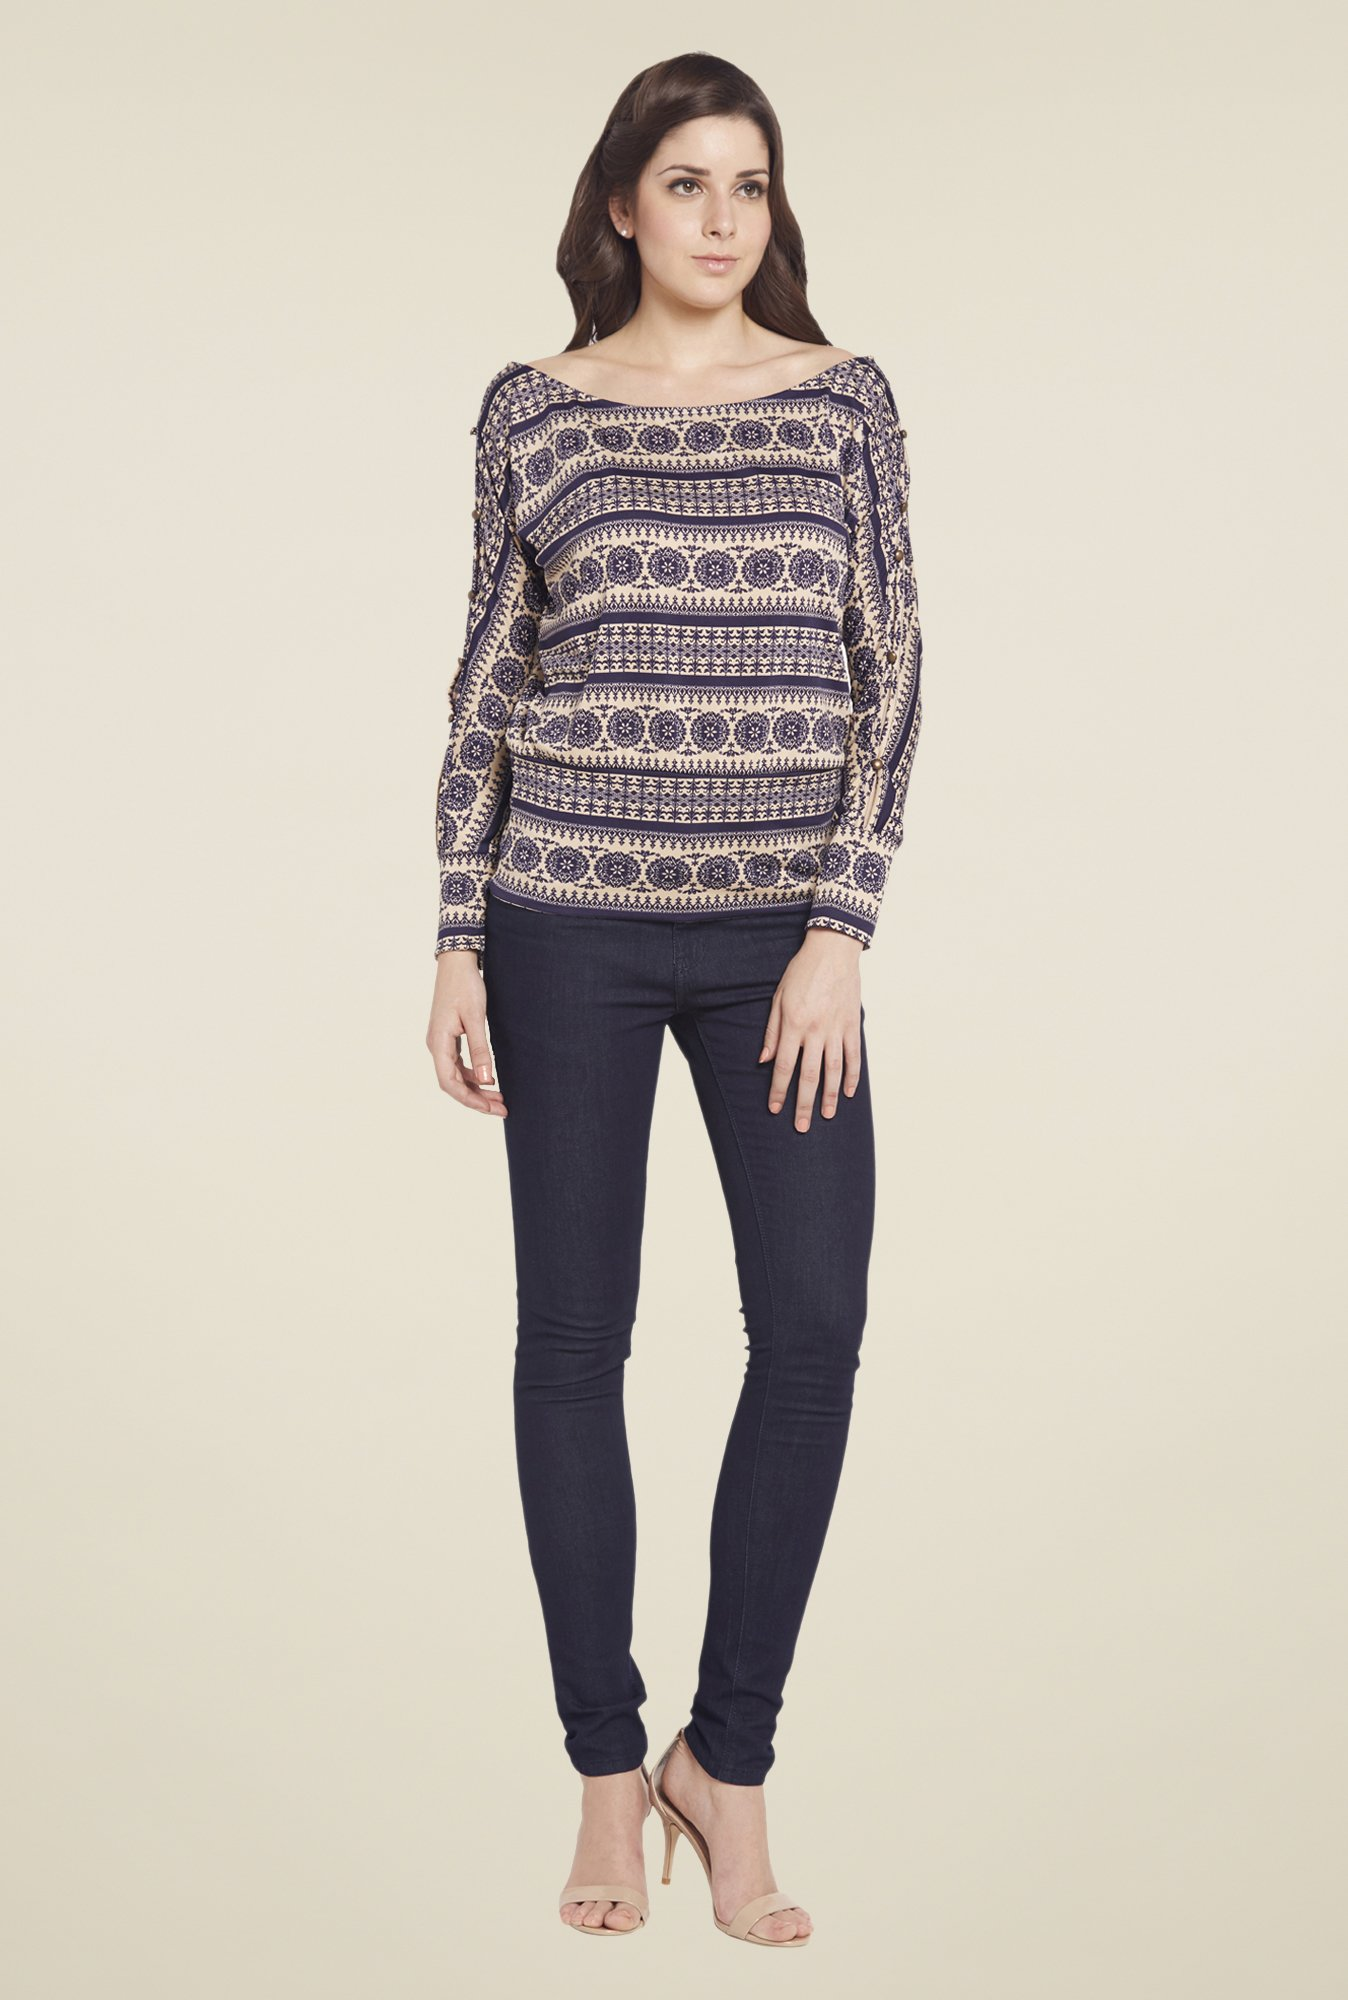 Globus Navy Printed Boat Neck Top